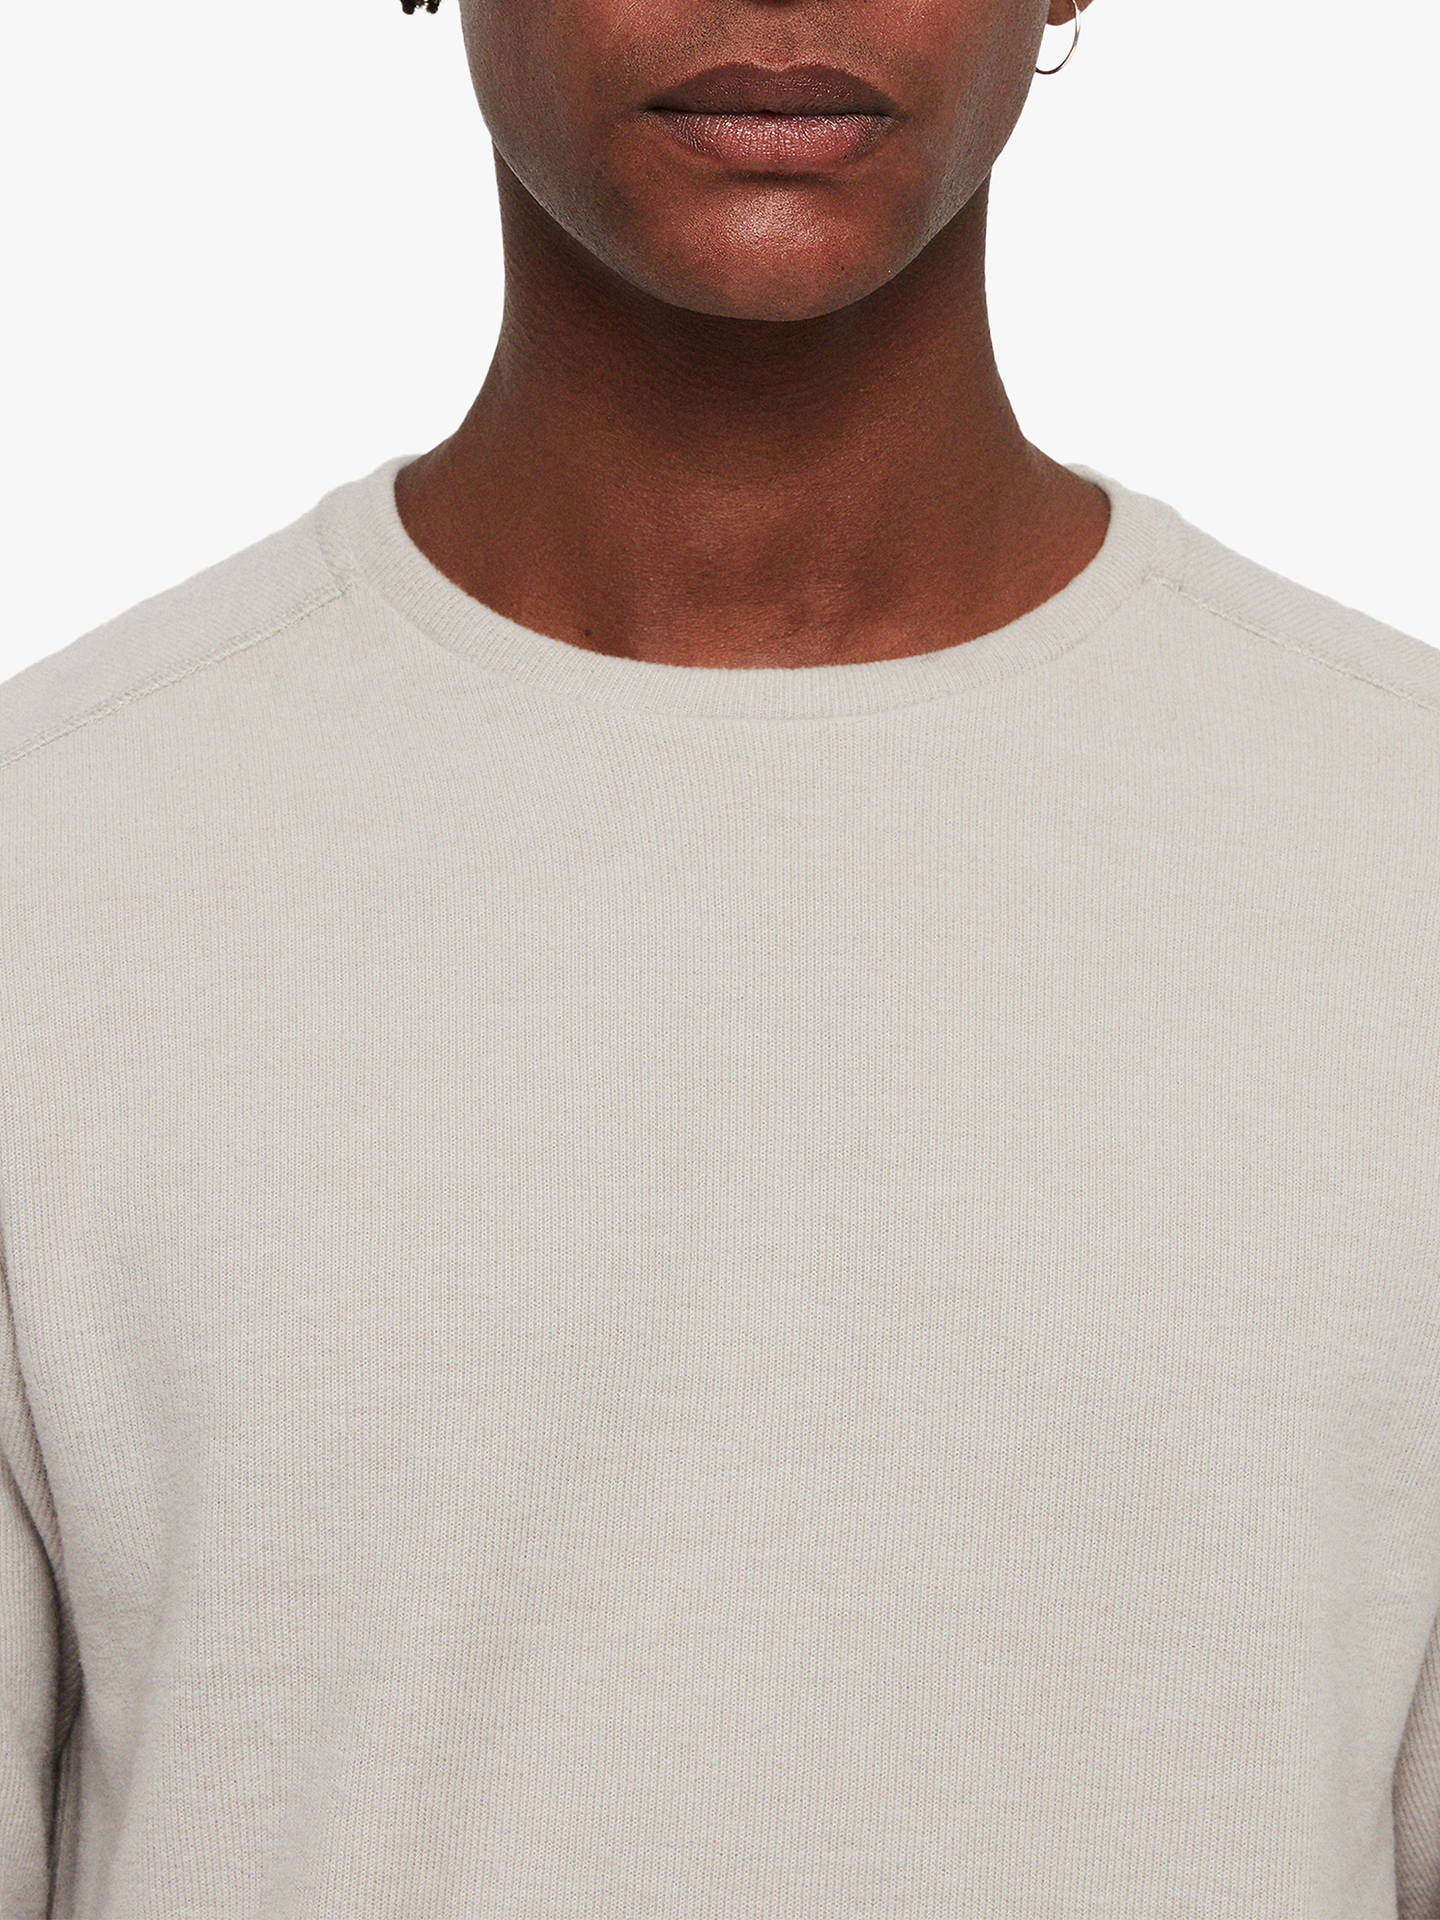 BuyAllSaints Luge Layered T-Shirt, Taupe Marl, L Online at johnlewis.com